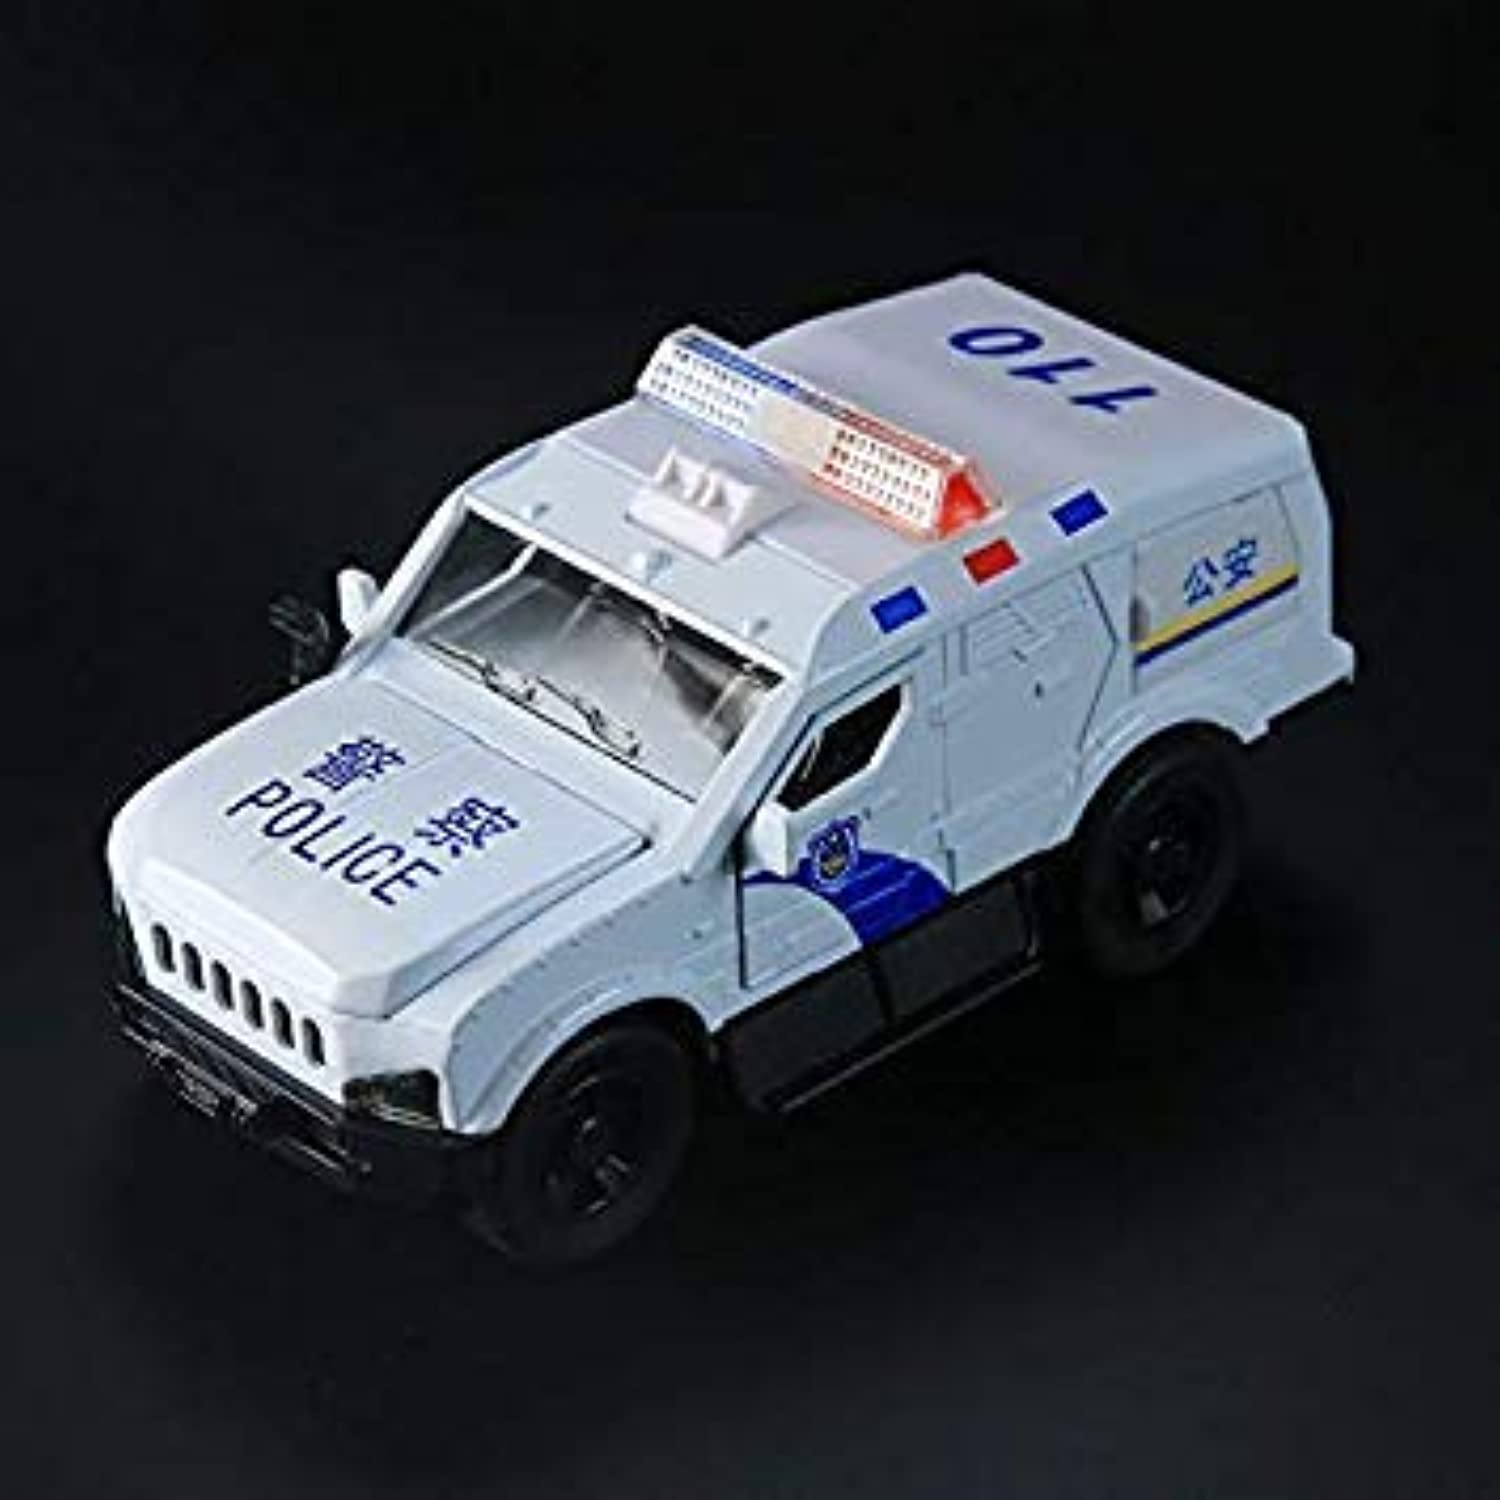 Jeep Wrangler Car Model Toys SUV Vehicles Toys Kids Play Car Model Car Collection Boy Birthday Gifts Pull Back Lights White